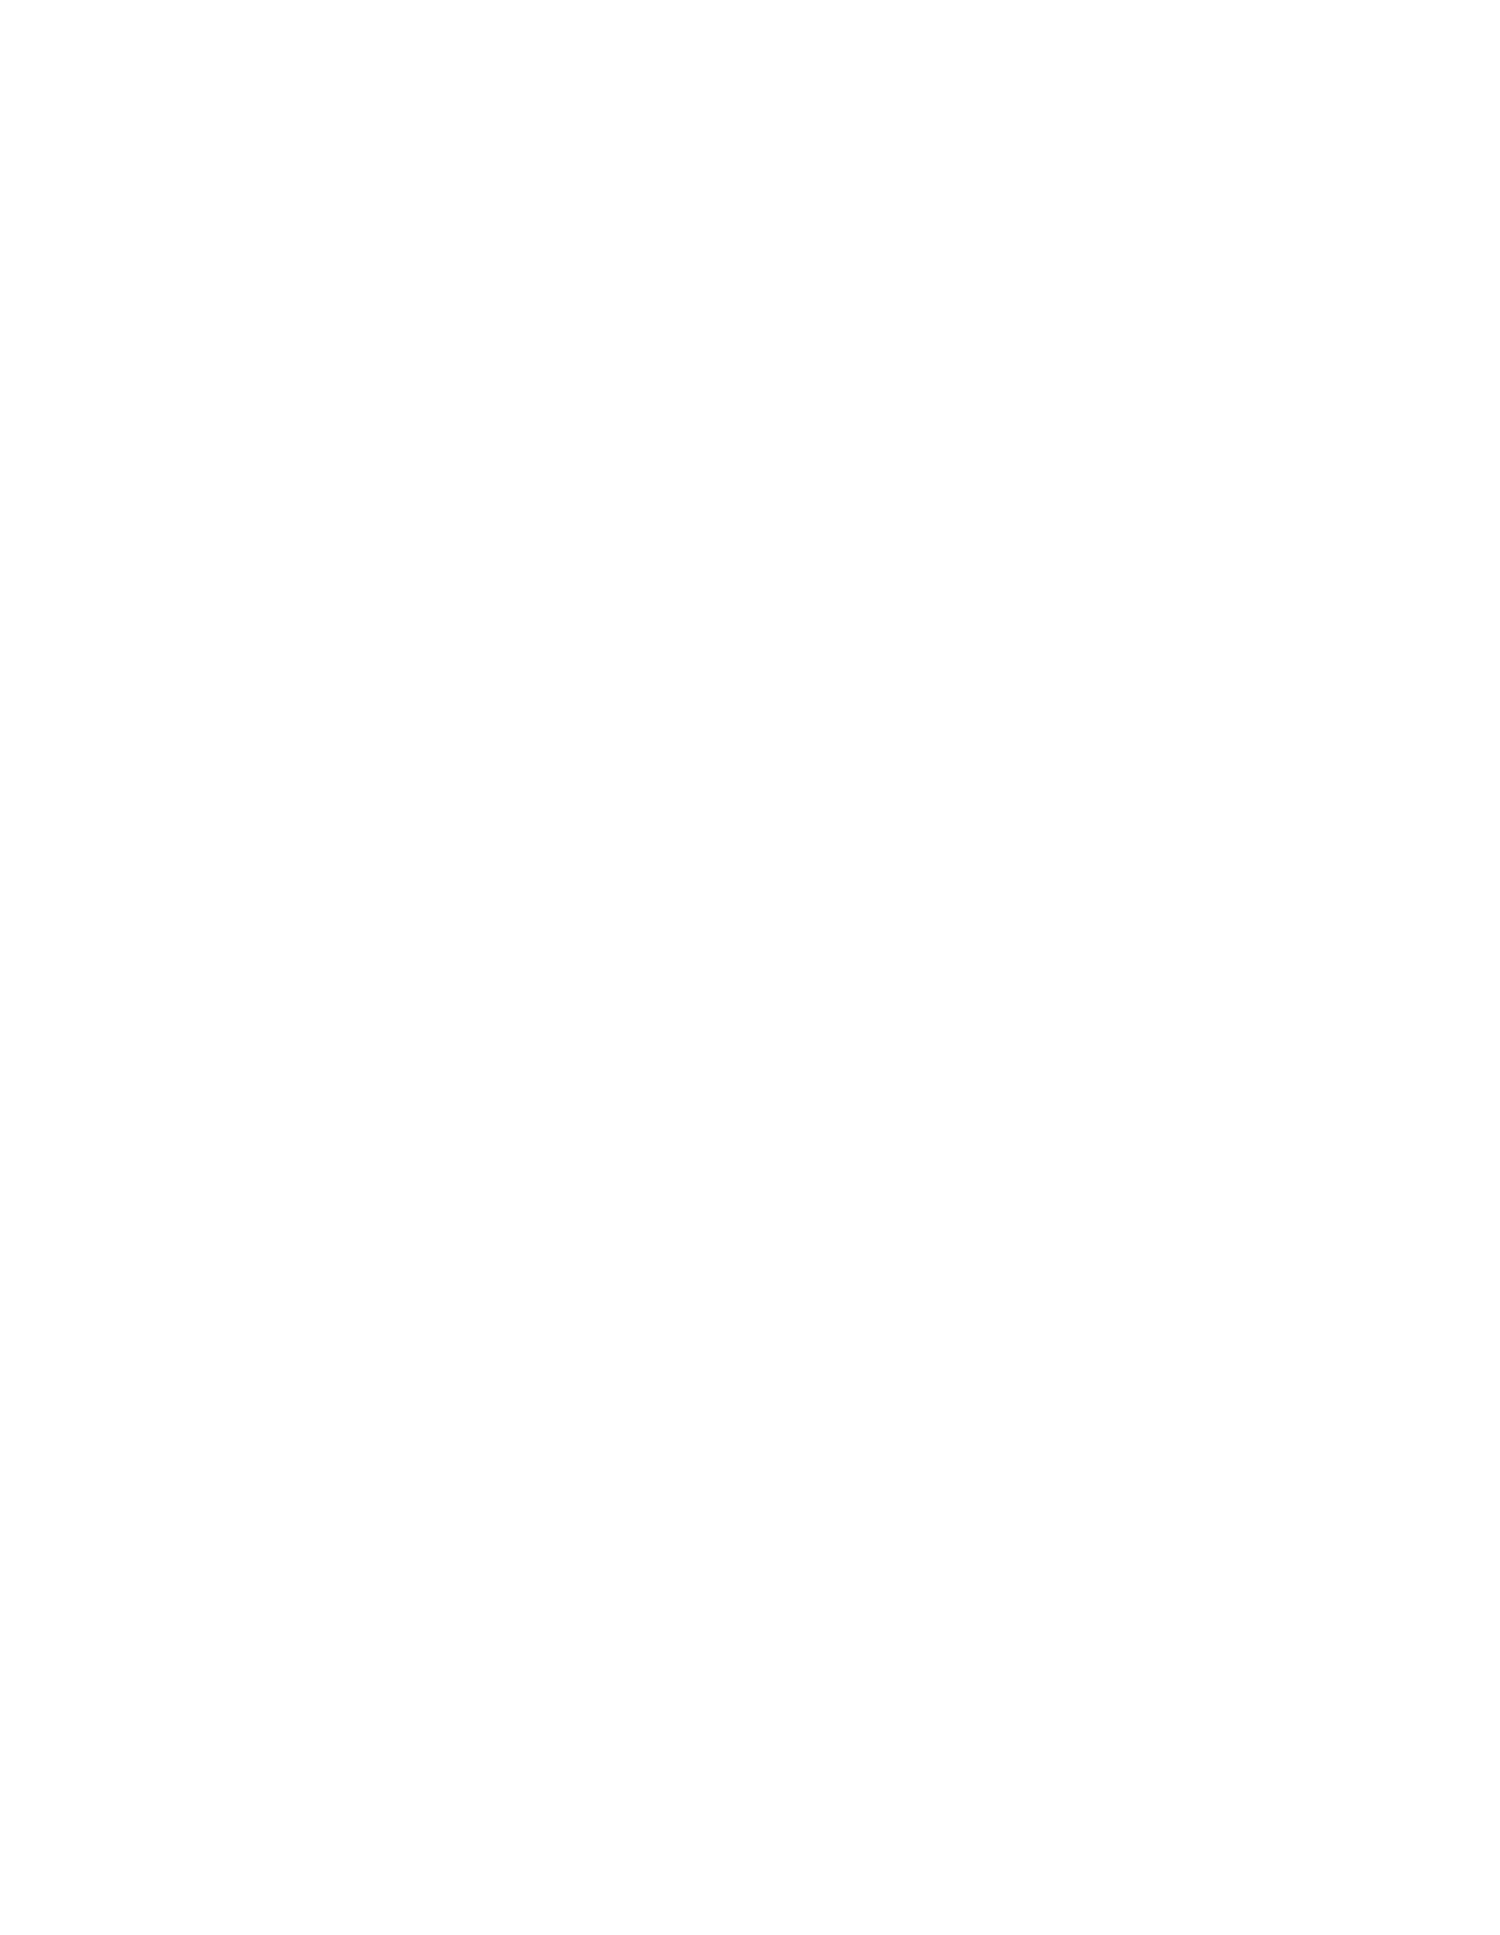 Real World Consultancy